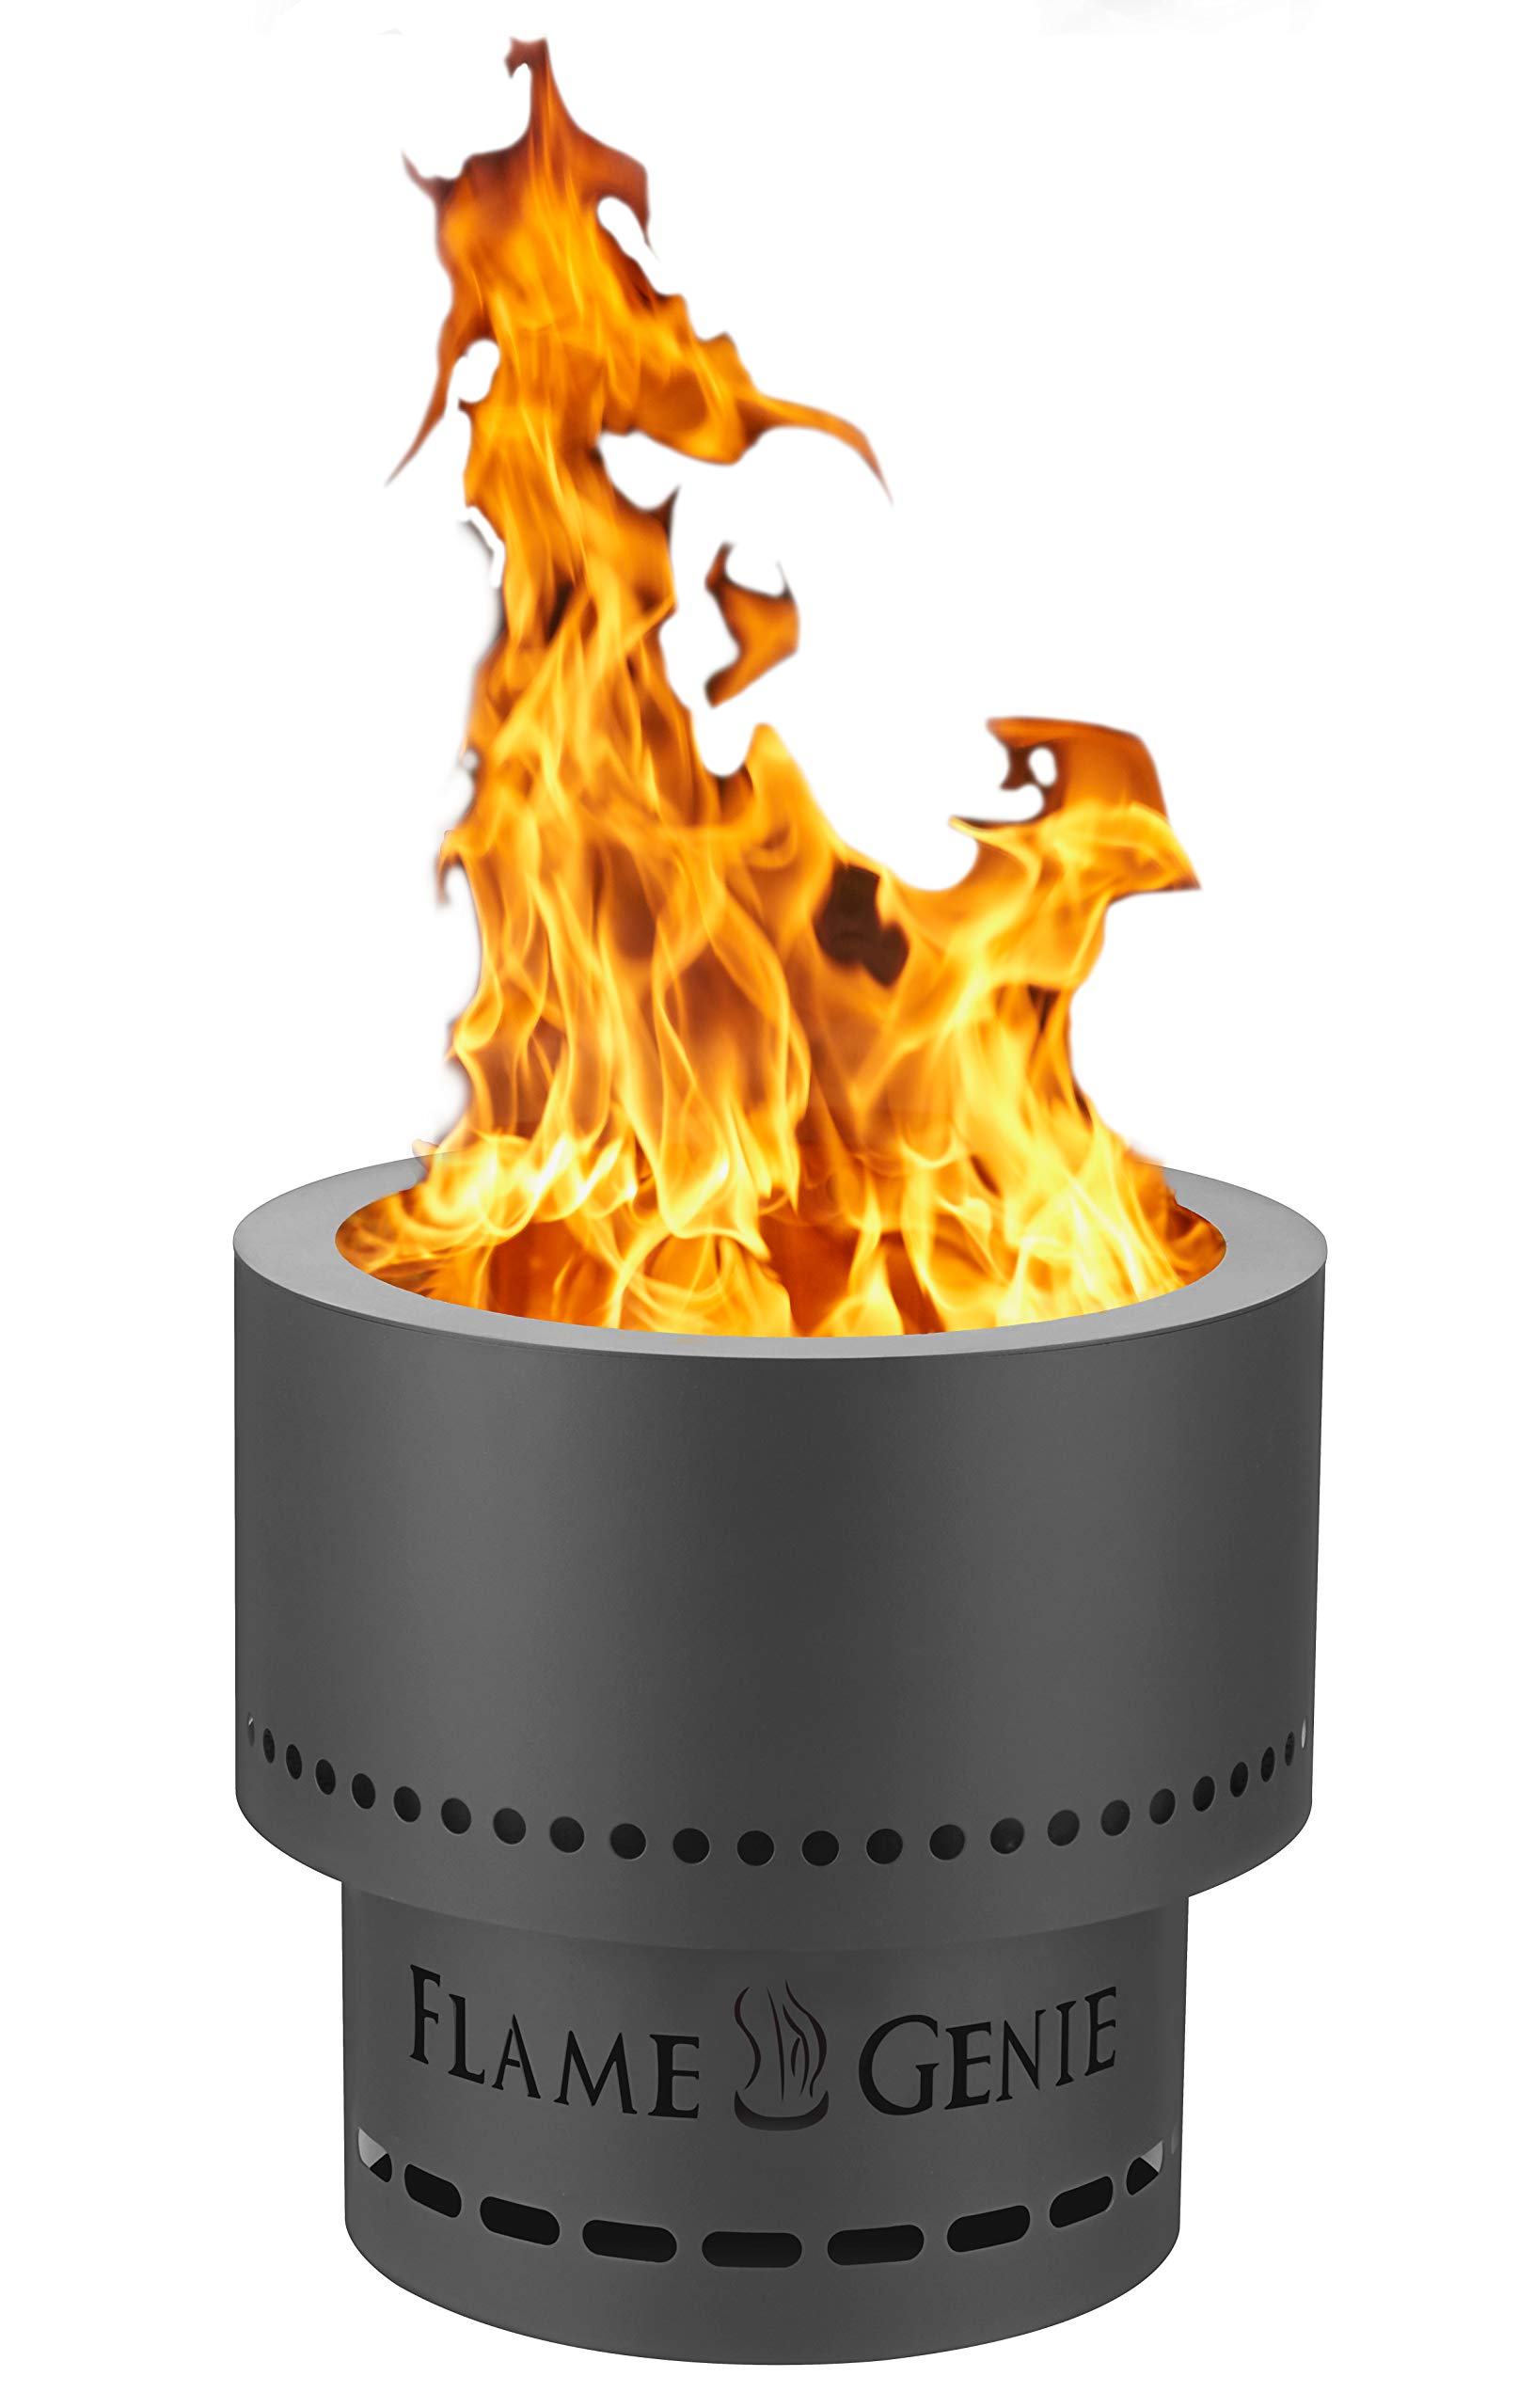 Hy C Fg 16 Flame Genie Portable Smoke Free Wood Pellet Fire Pit Usa Made 13 5 Diameter Black Buy Online In Cook Islands At Cook Desertcart Com Productid 9598054